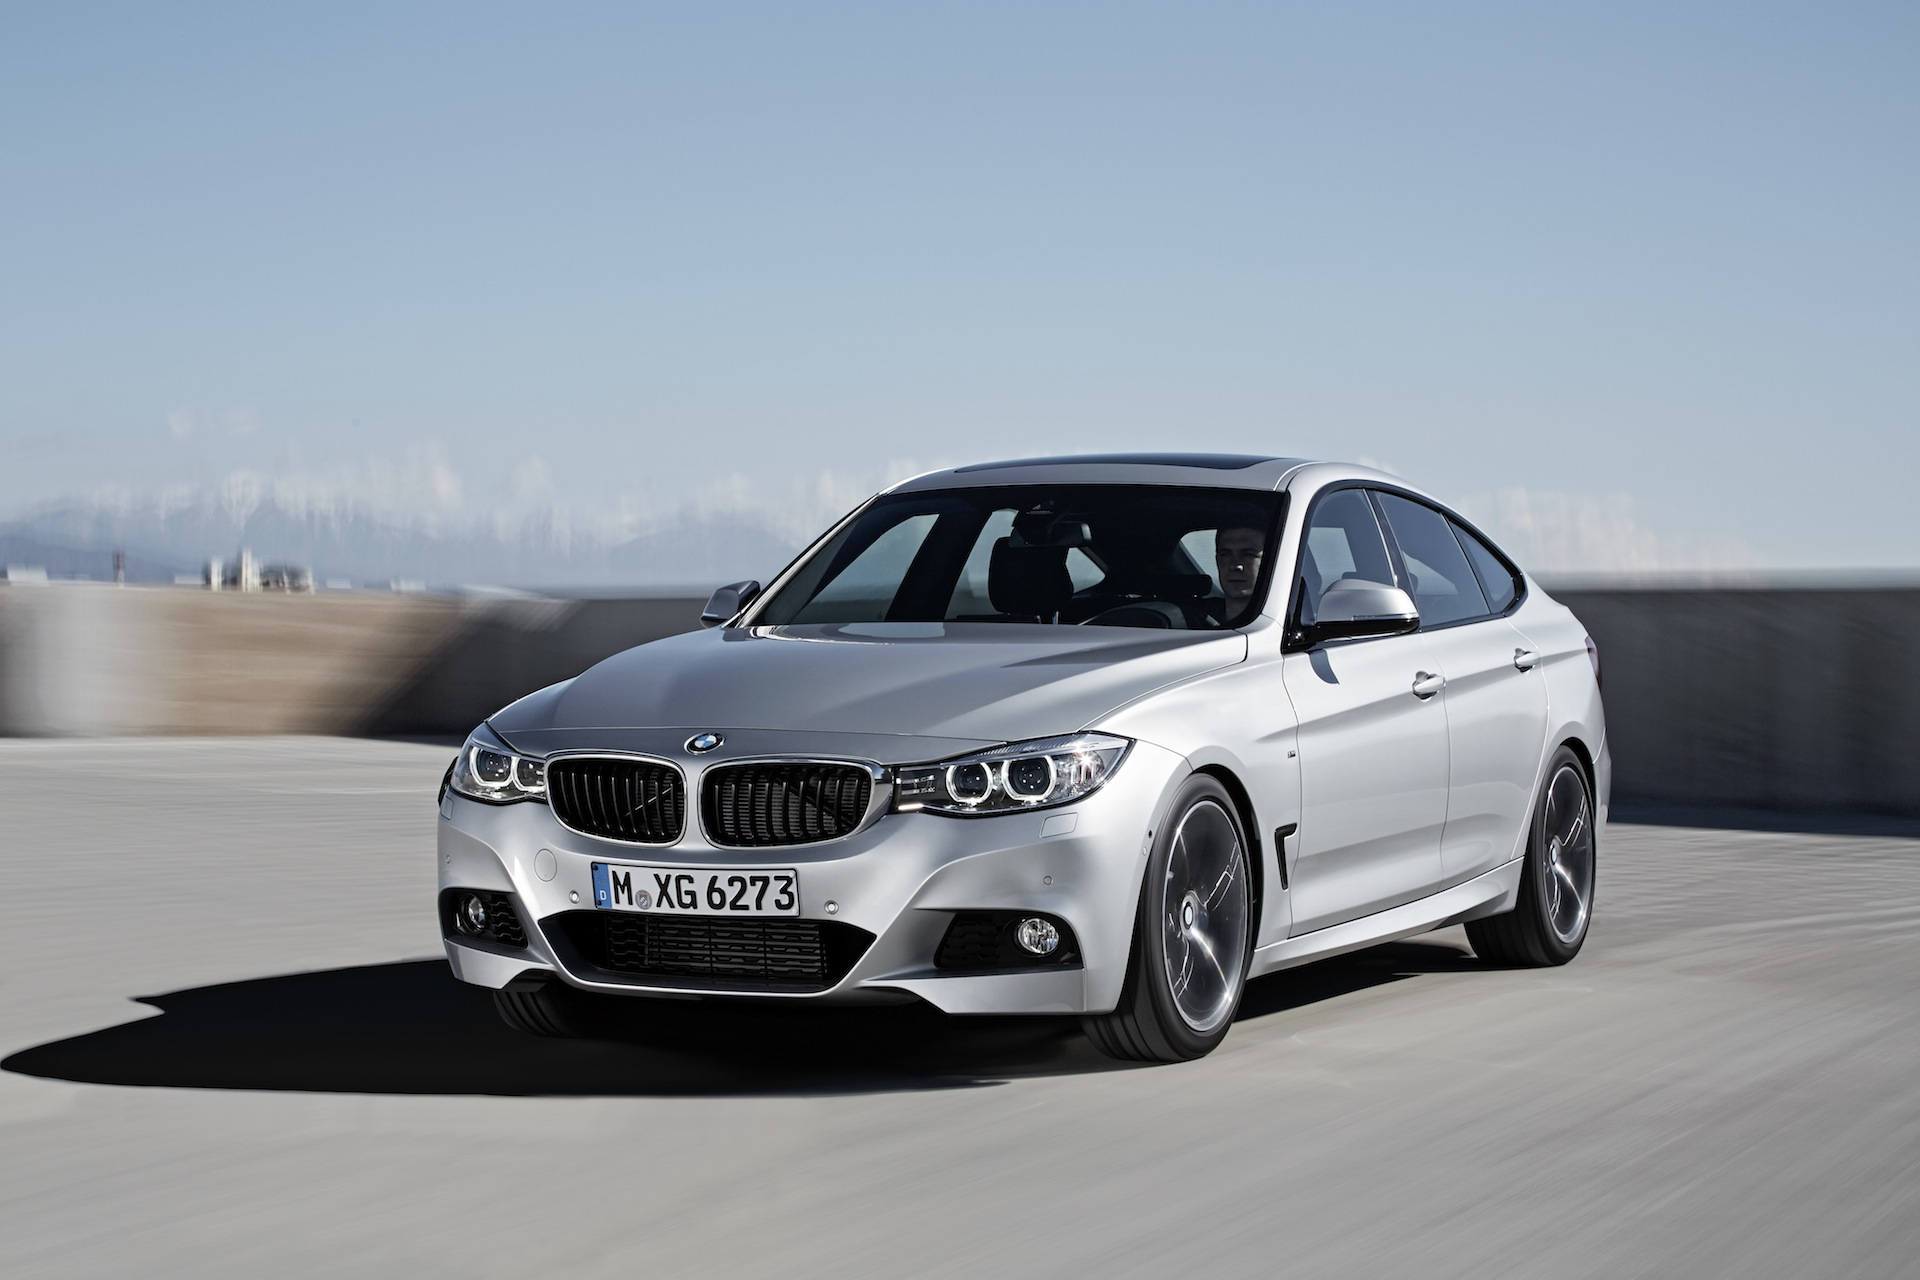 2013 bmw 3 series f30 pictures information and specs auto. Black Bedroom Furniture Sets. Home Design Ideas